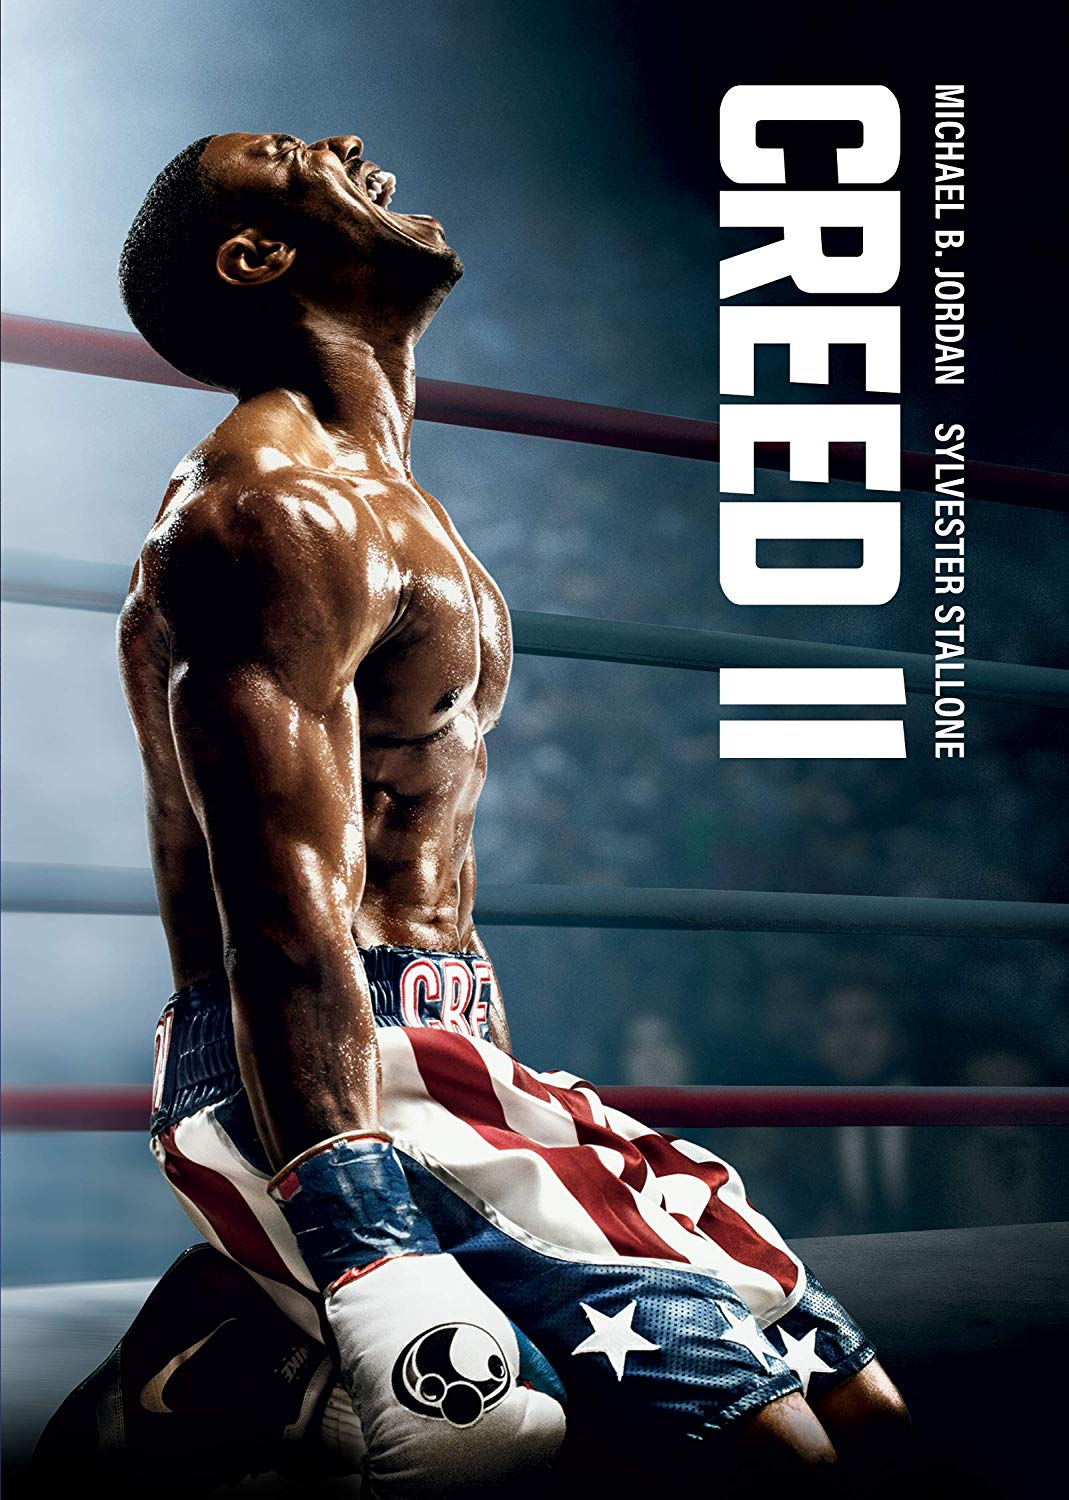 Creed II - Steven Caple Jr. [DVD]